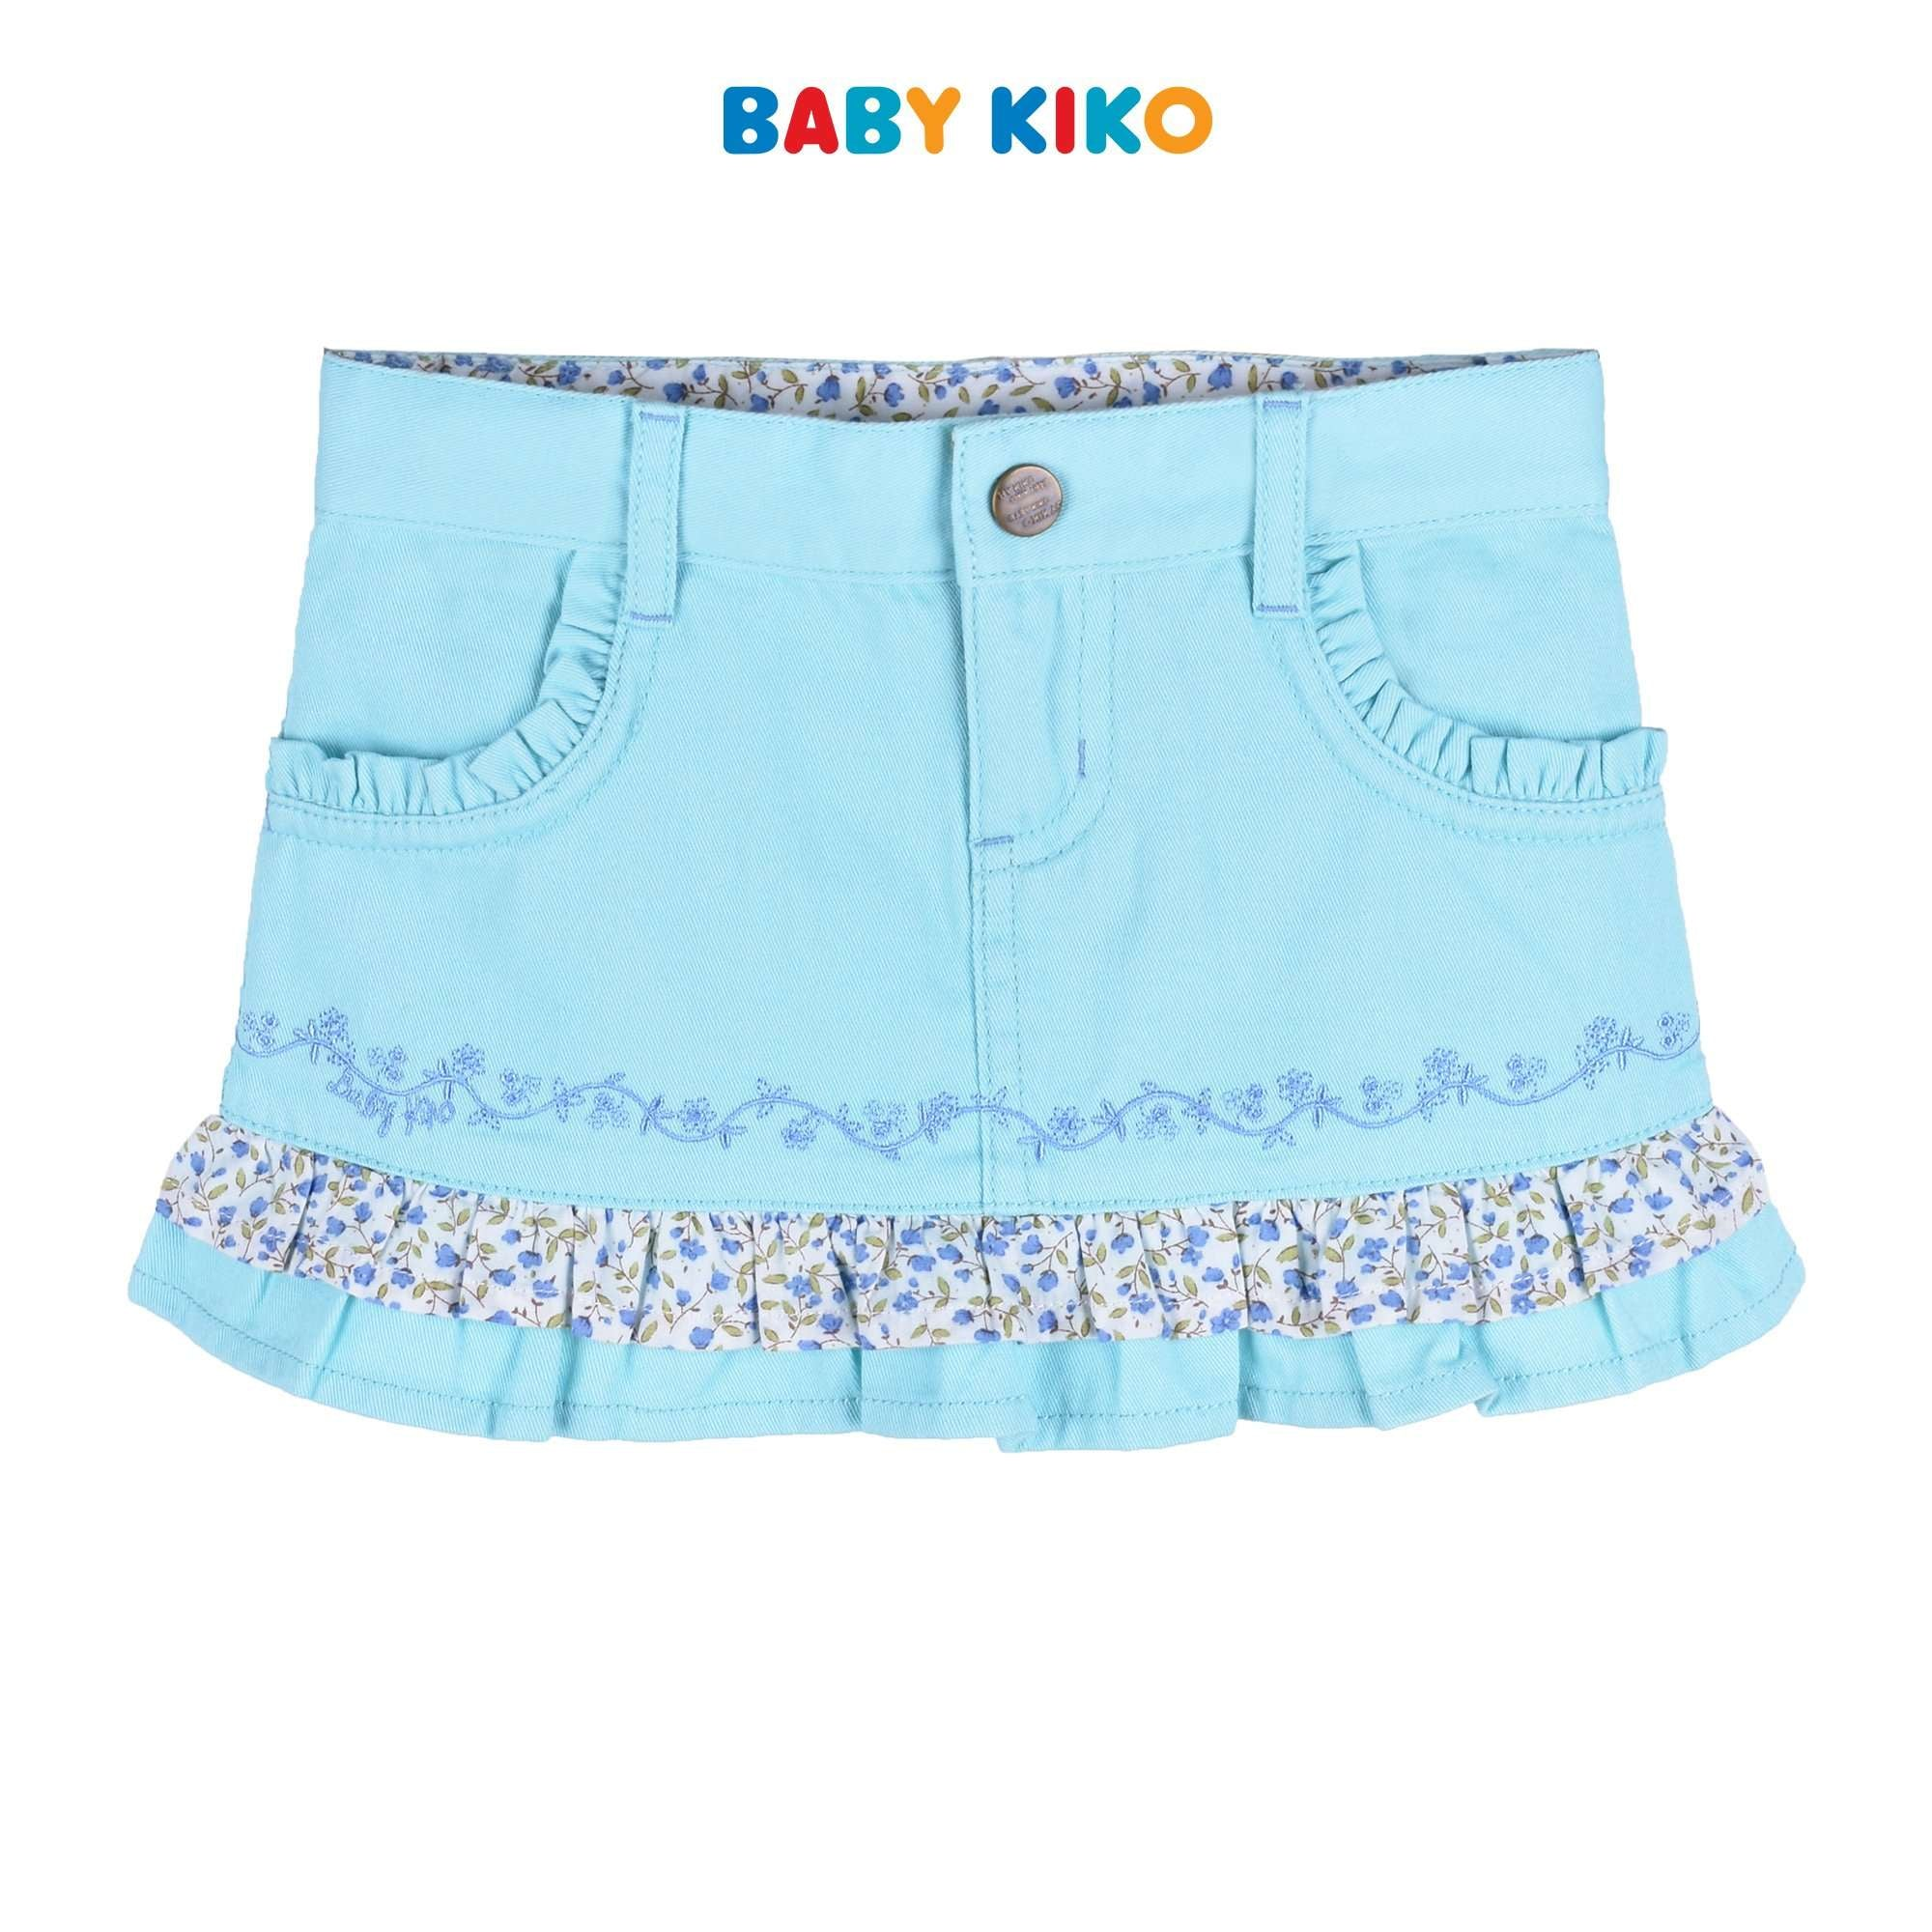 Baby KIKO Toddler Girl Short Skirt - Turquoise 335095-262 : Buy Baby KIKO online at CMG.MY